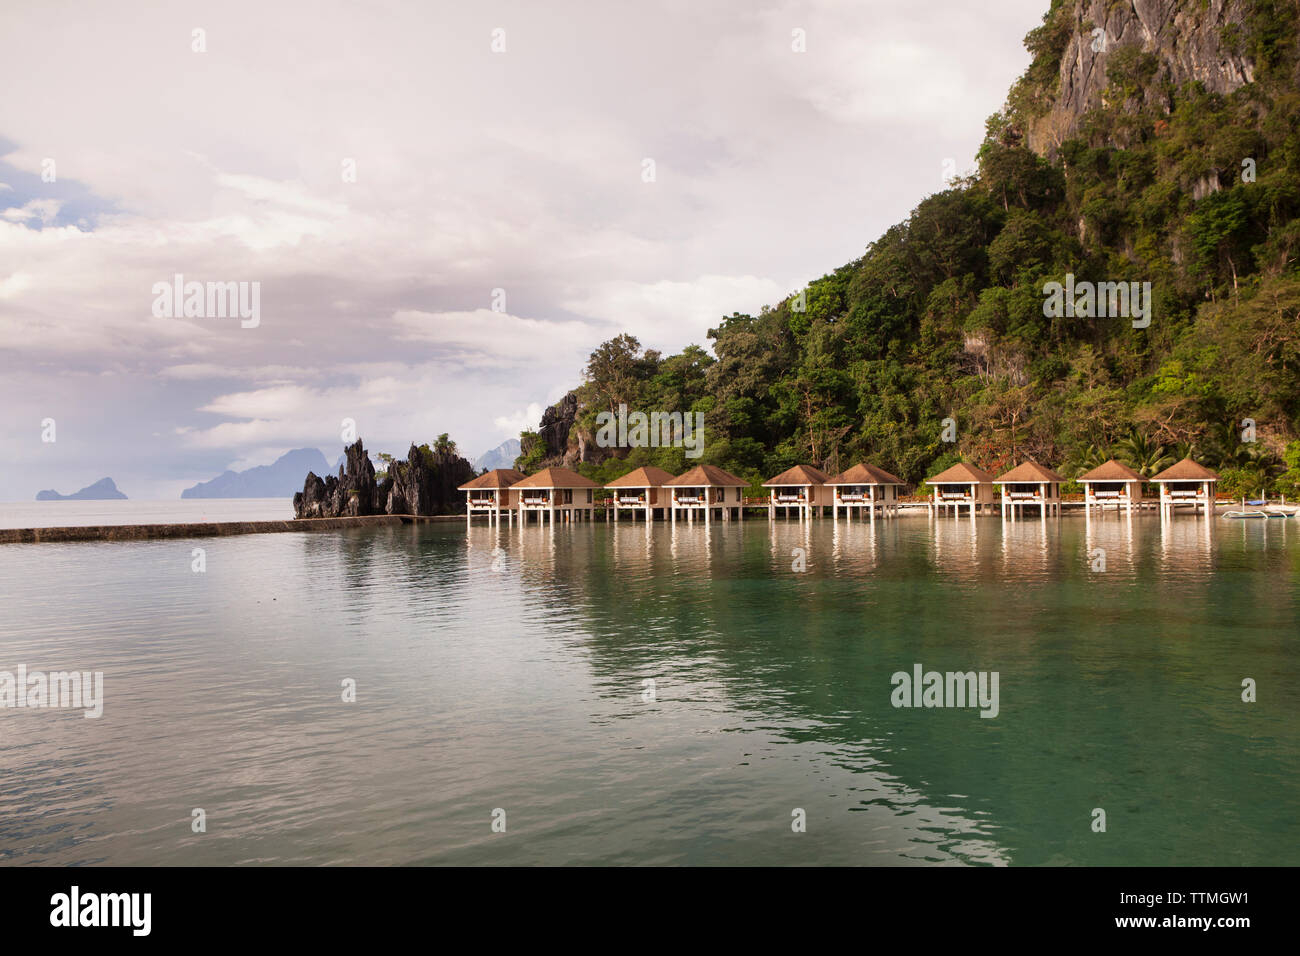 PHILIPPINES, Palawan, El Nido, arriving by boat to Lagen Island resort in Bacuit Bay in the South China Sea - Stock Image